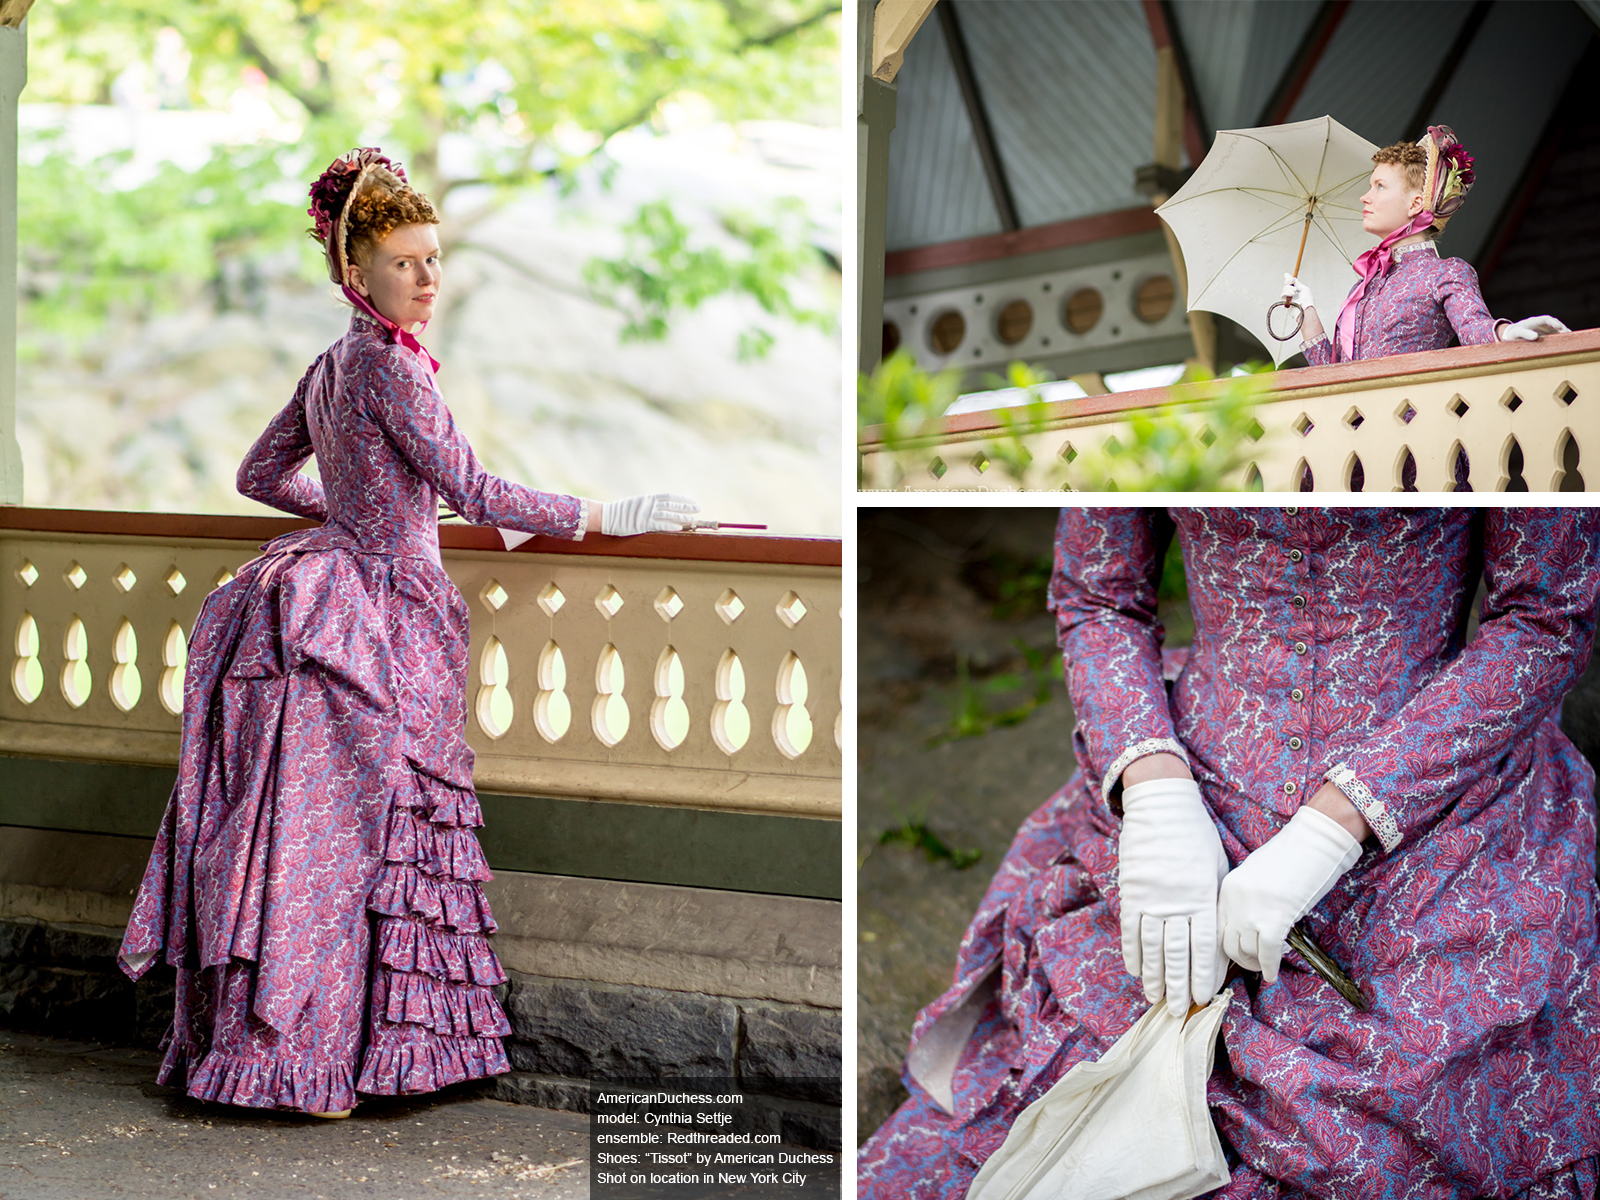 Redthreaded bustle gown in New York City, photographed by American Duchess